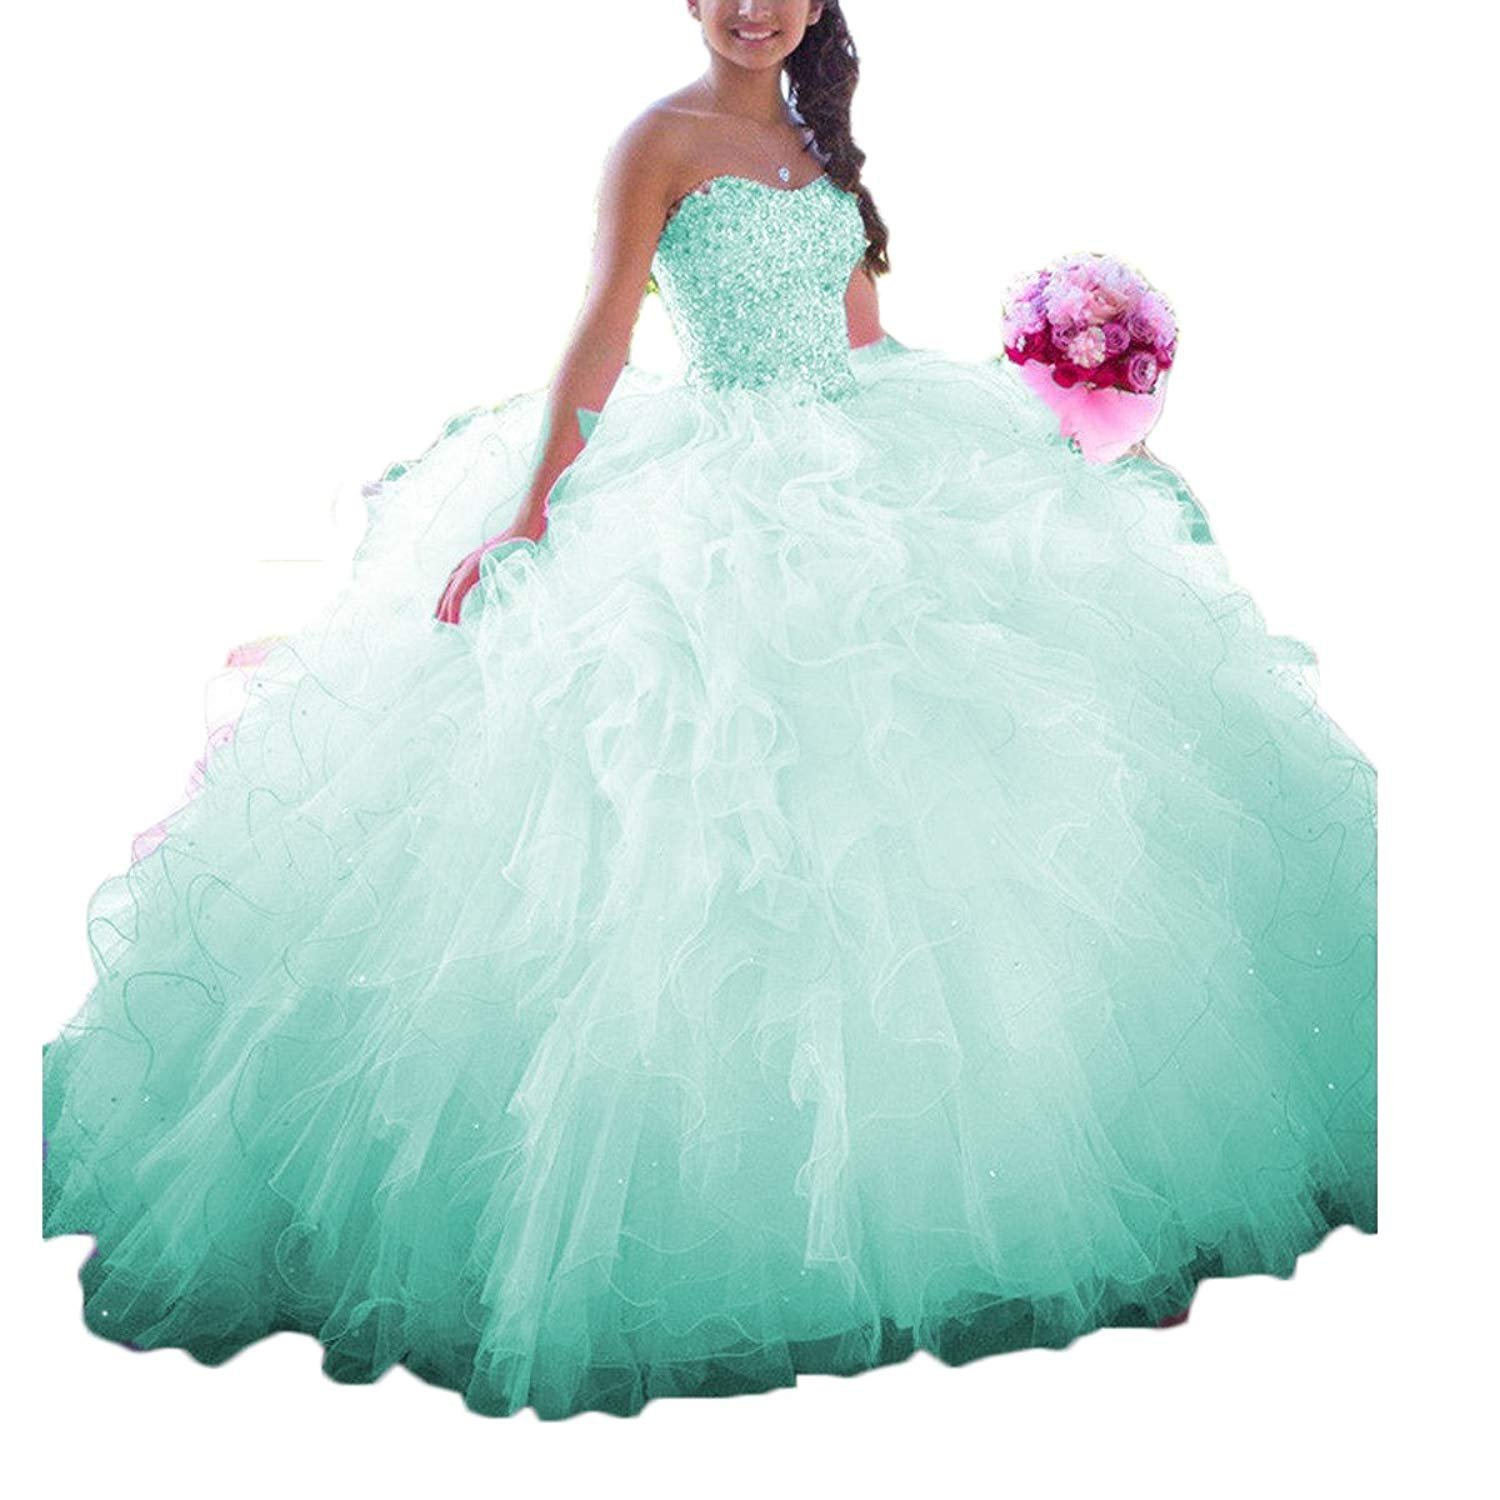 OkayBridal Womens Sweetheart Organza Quinceanera Dresses Beading Princess Sweet 16 Prom Party Ball Gowns OK0090